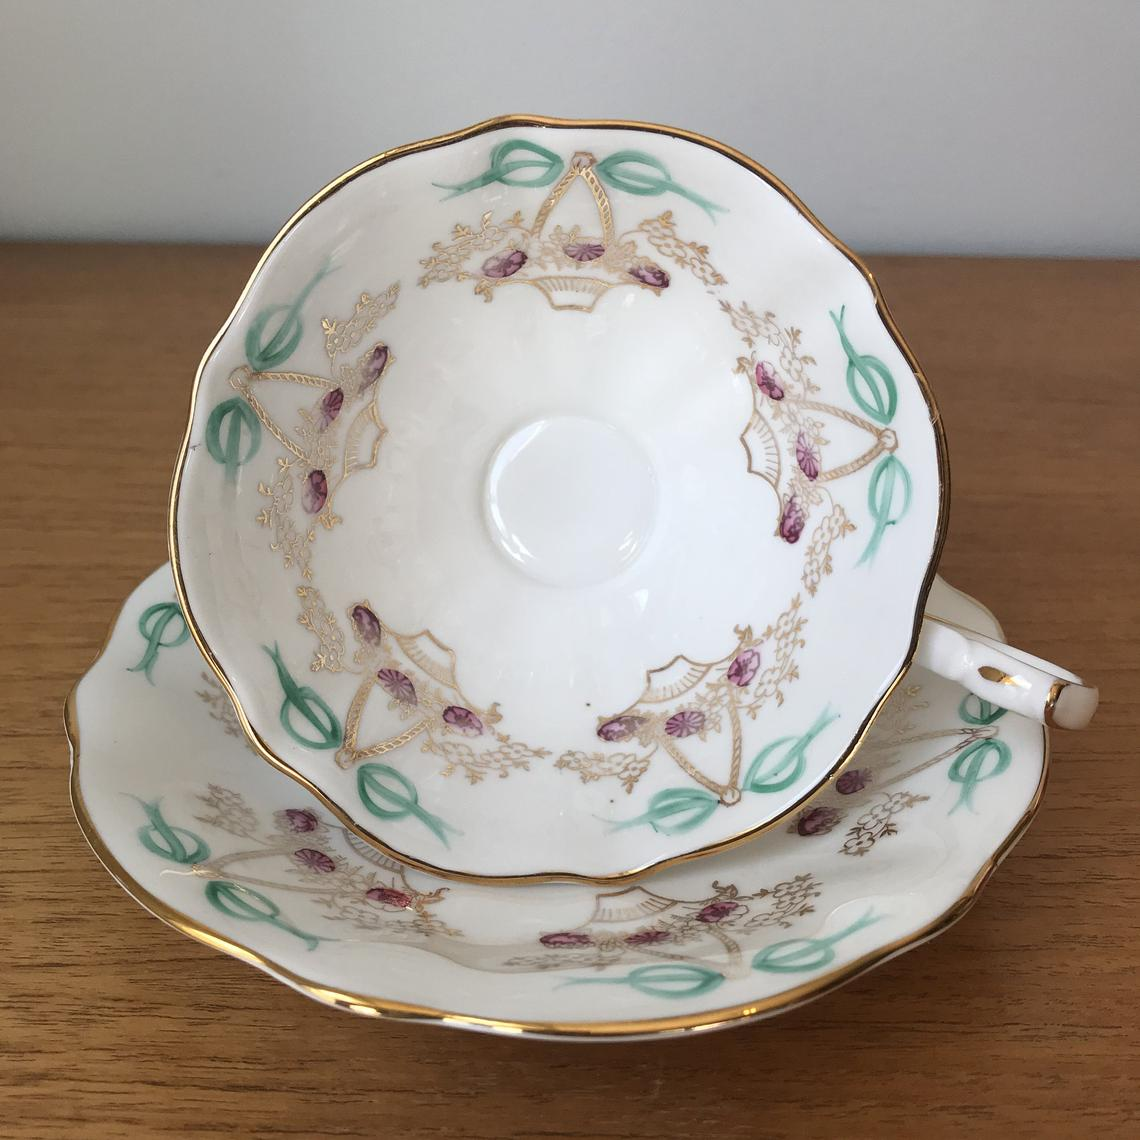 Ribbon Bows Tea Cup and Saucer, Queen Anne Baskets and Bows Teacup and Saucer, Fine Bone China, Vintage